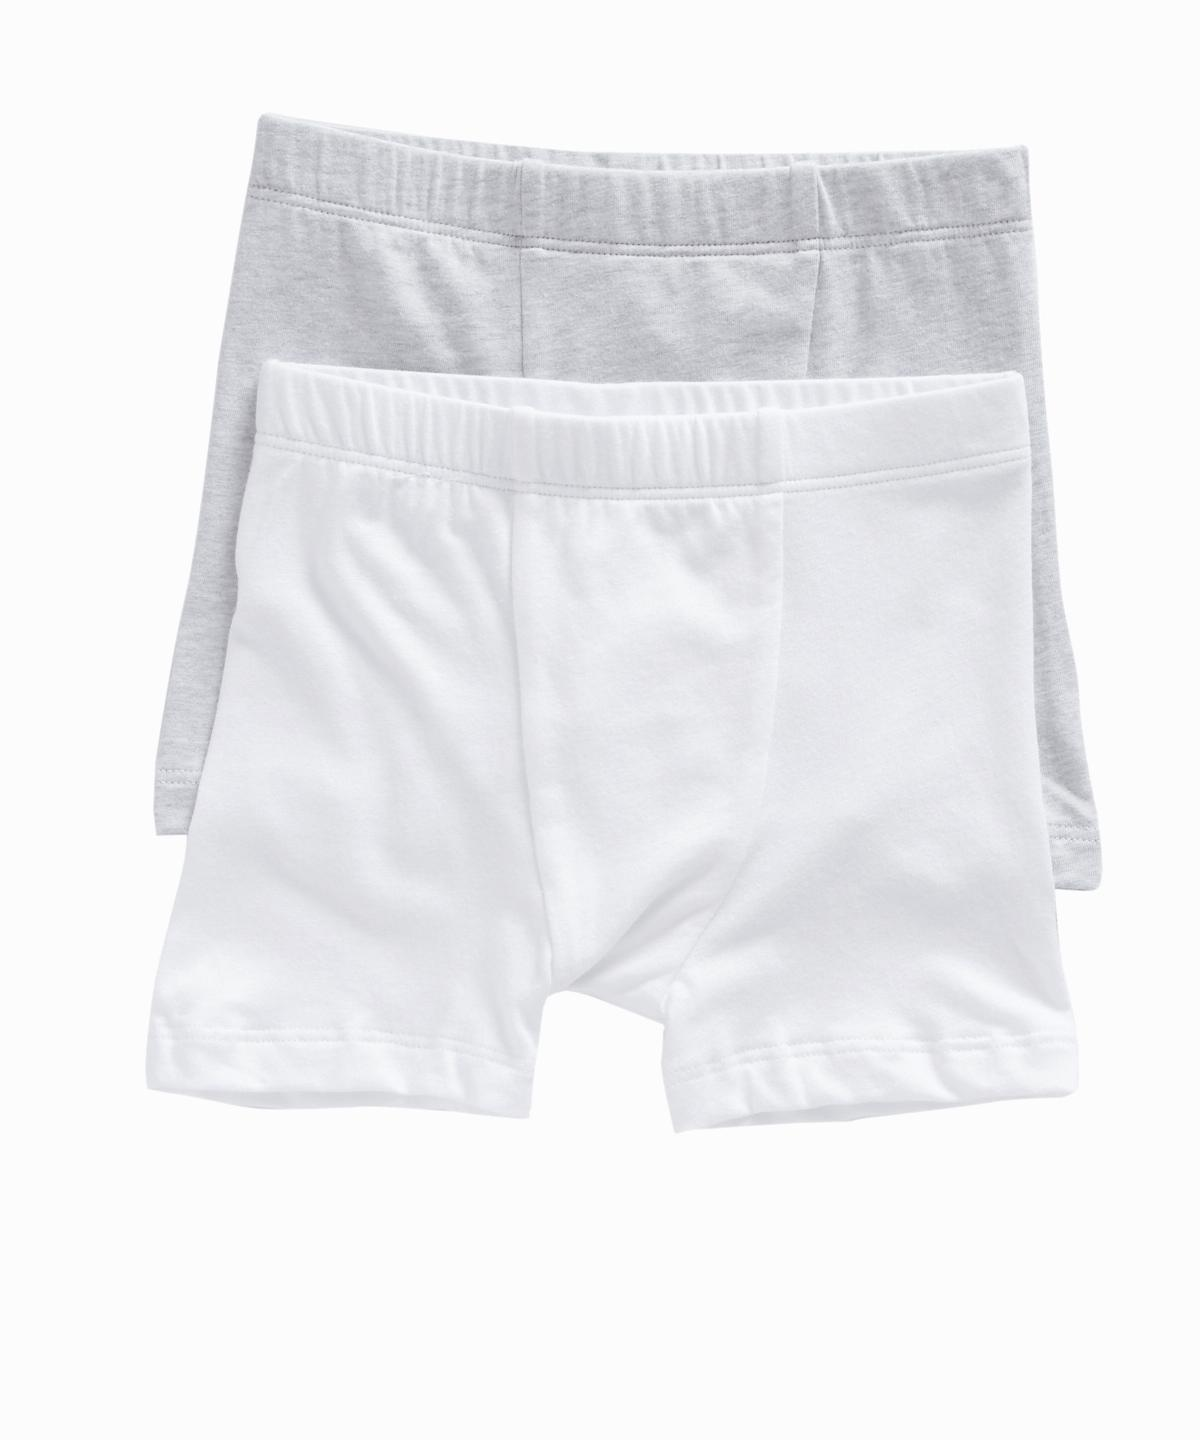 White/Grey Set of 2 Boxers